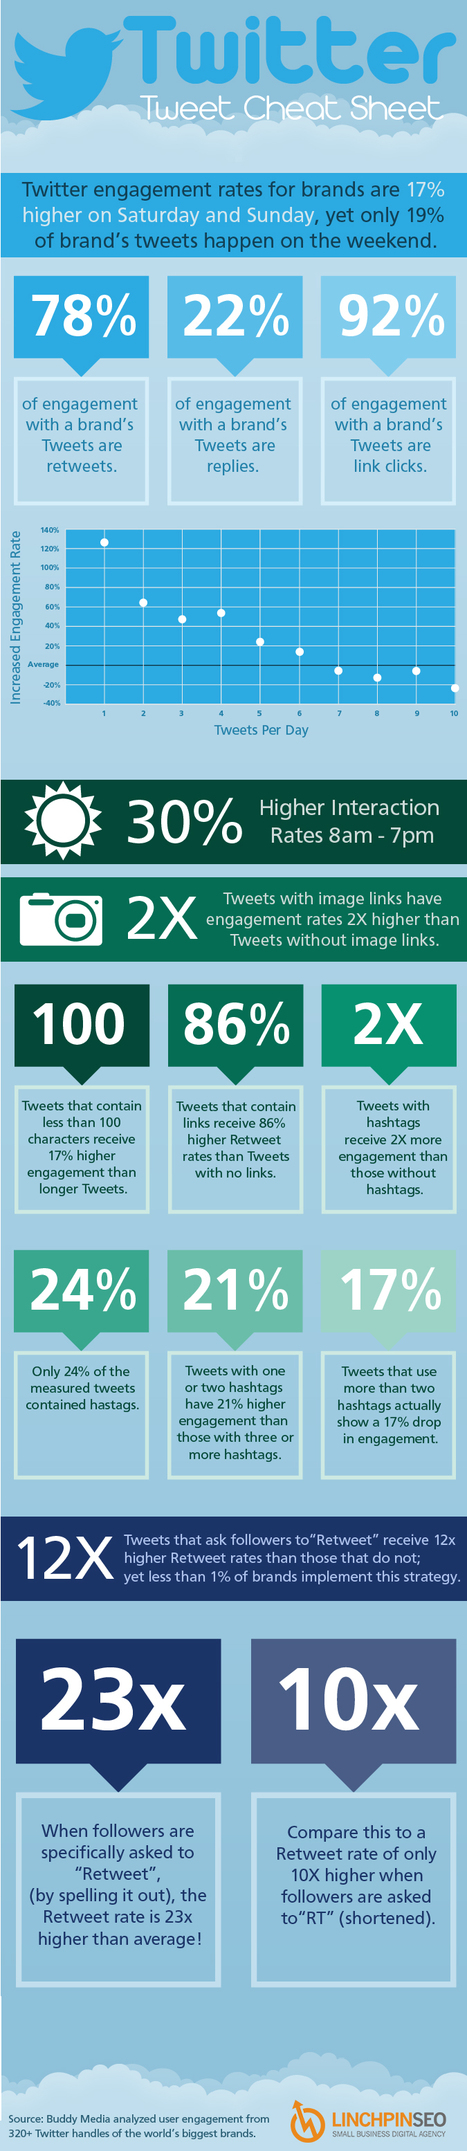 Guide For Increasing Twitter Engagement Rate For Brands [Infographic] | Cheeky Marketing | Scoop.it